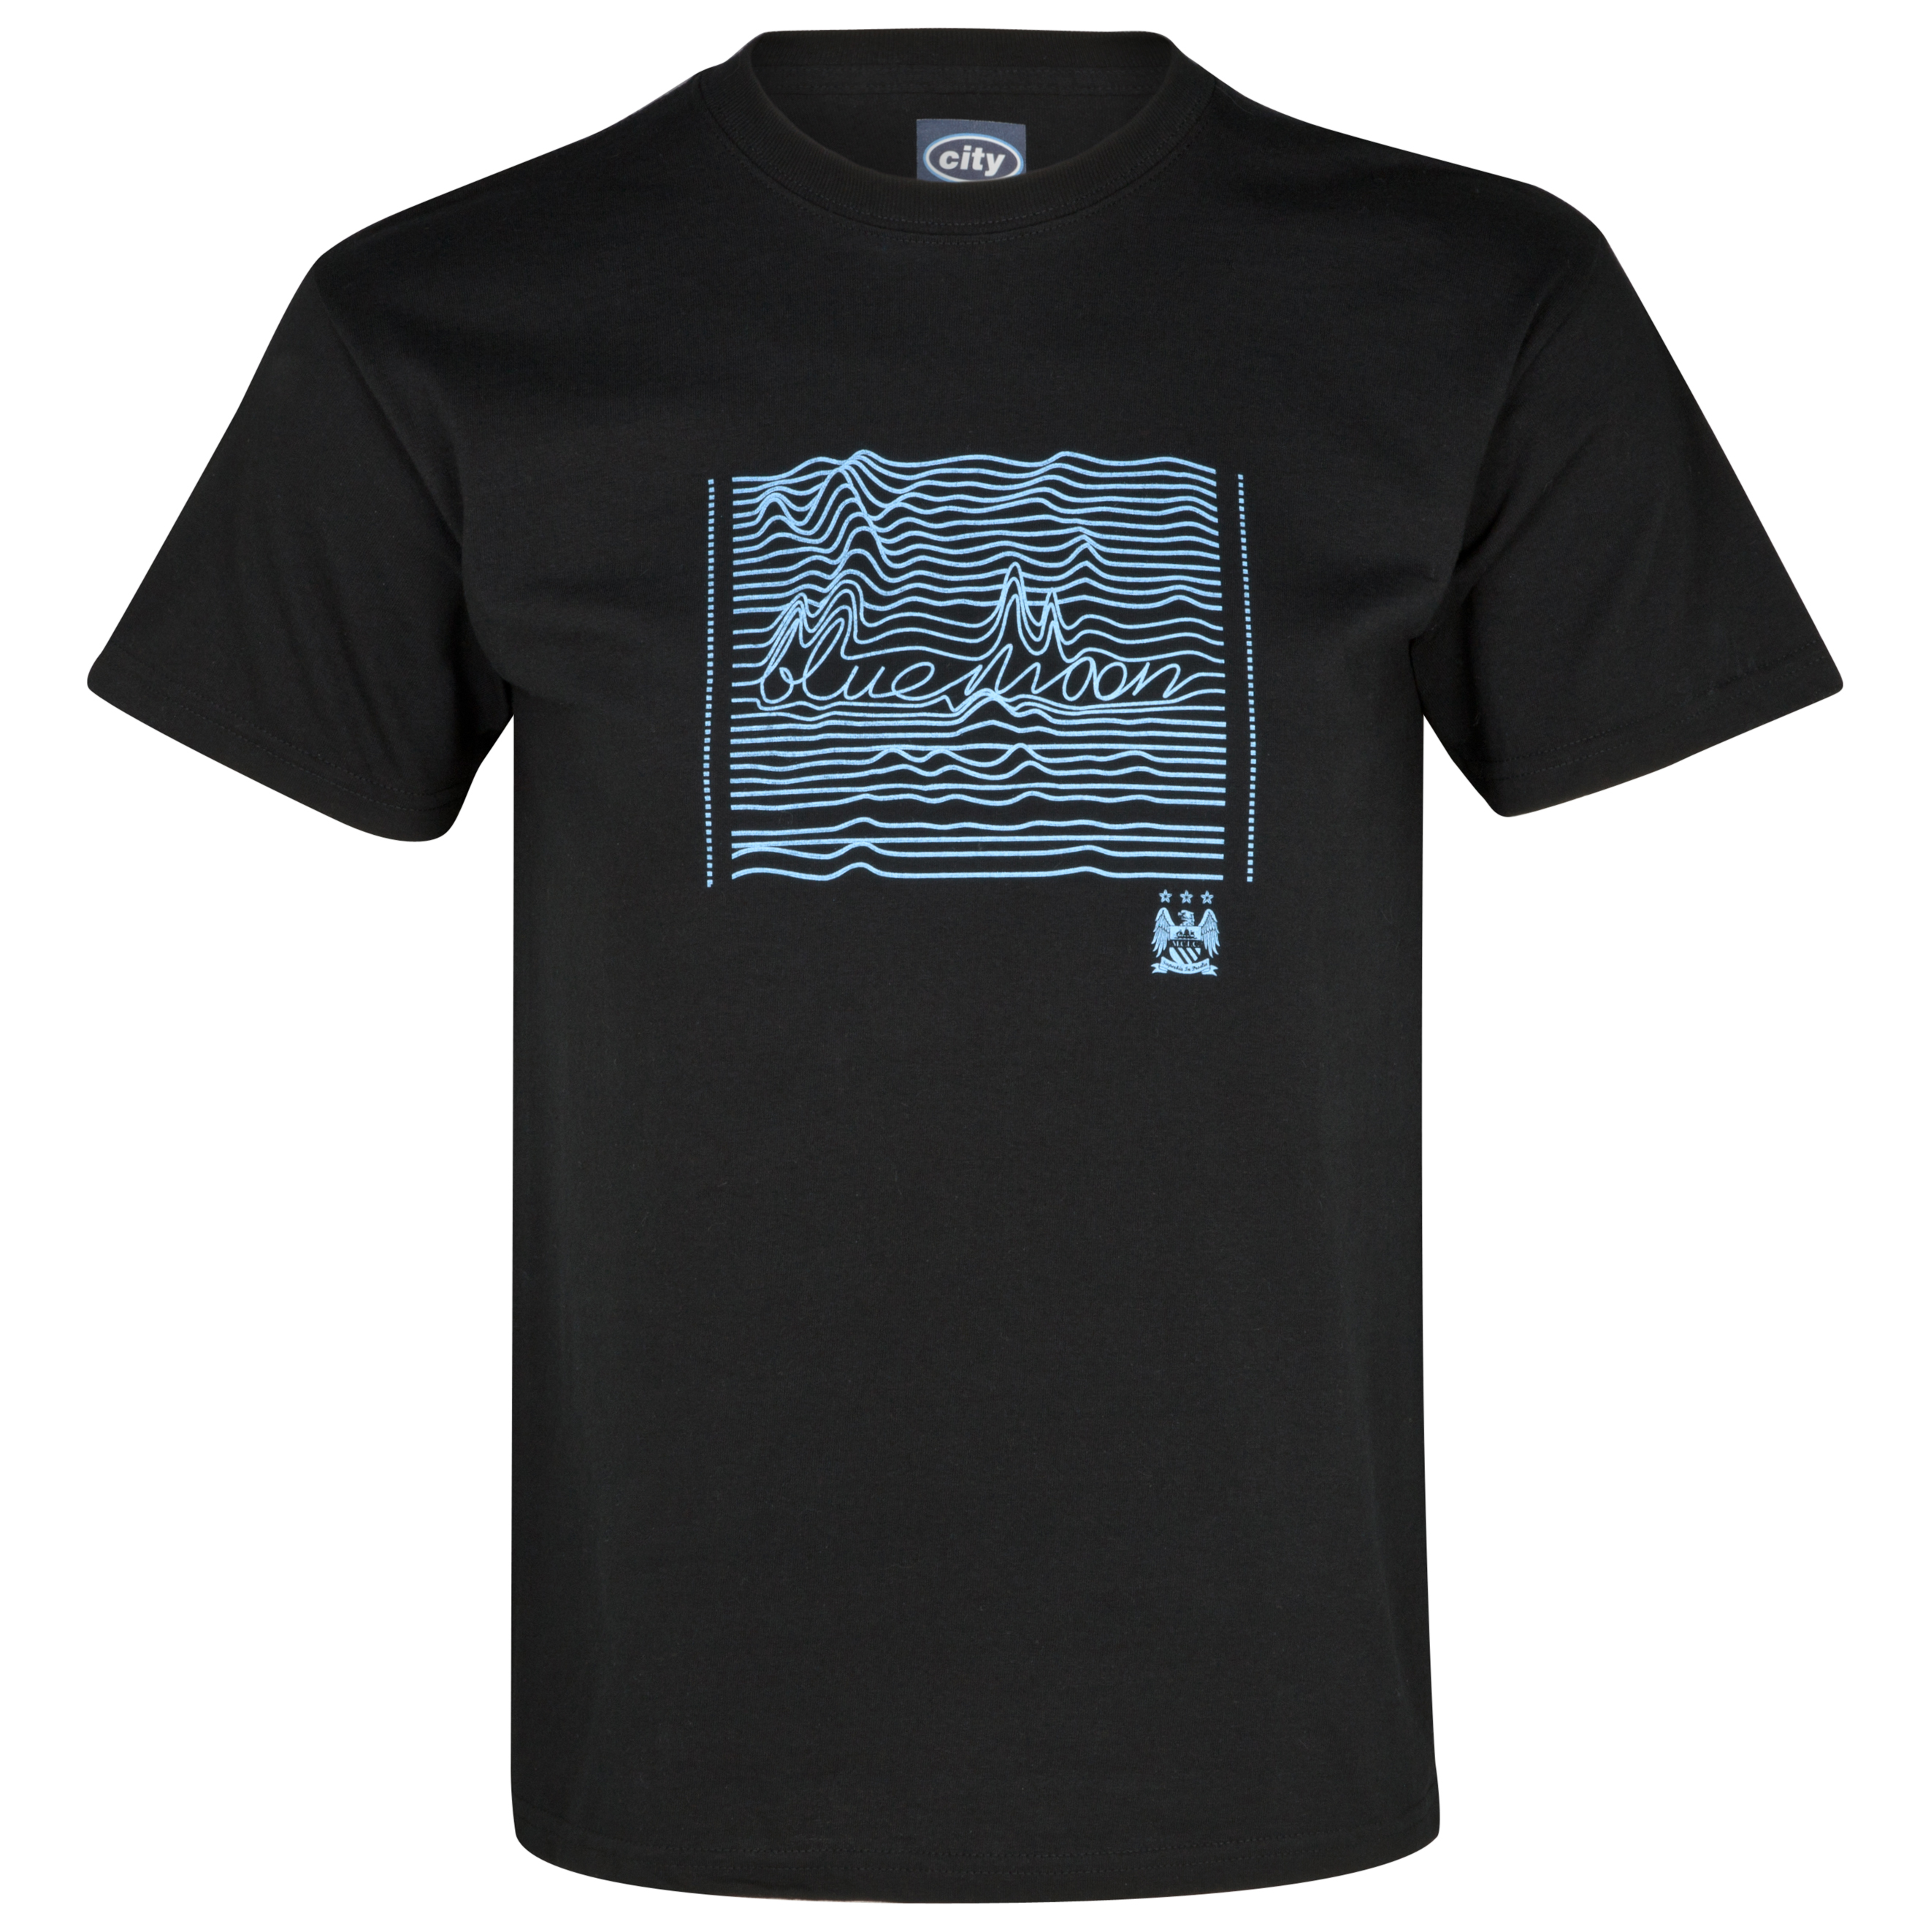 Manchester City Lines T-Shirt - Black